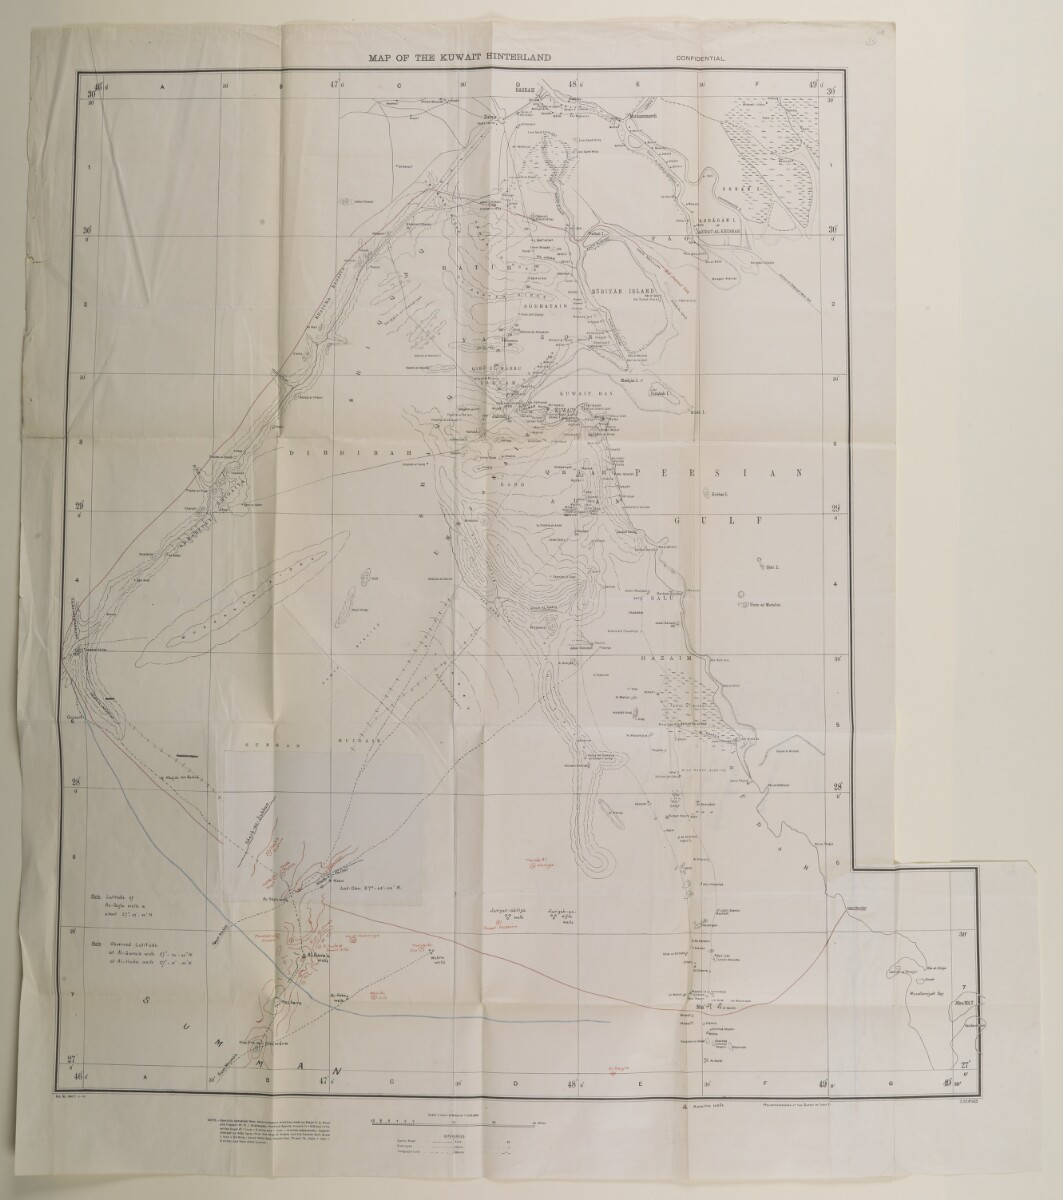 File 1247/1912 Pt 1 'Turkey:- Communication to Turkish Govt of agreement between Gt. Britain and Koweit, Bahrein & Trucial Chiefs. Decorations for Sheiks of Koweit, Mohammerah & Bahrein in connection with Anglo-Turkish Convention.' [57r] (33/336)